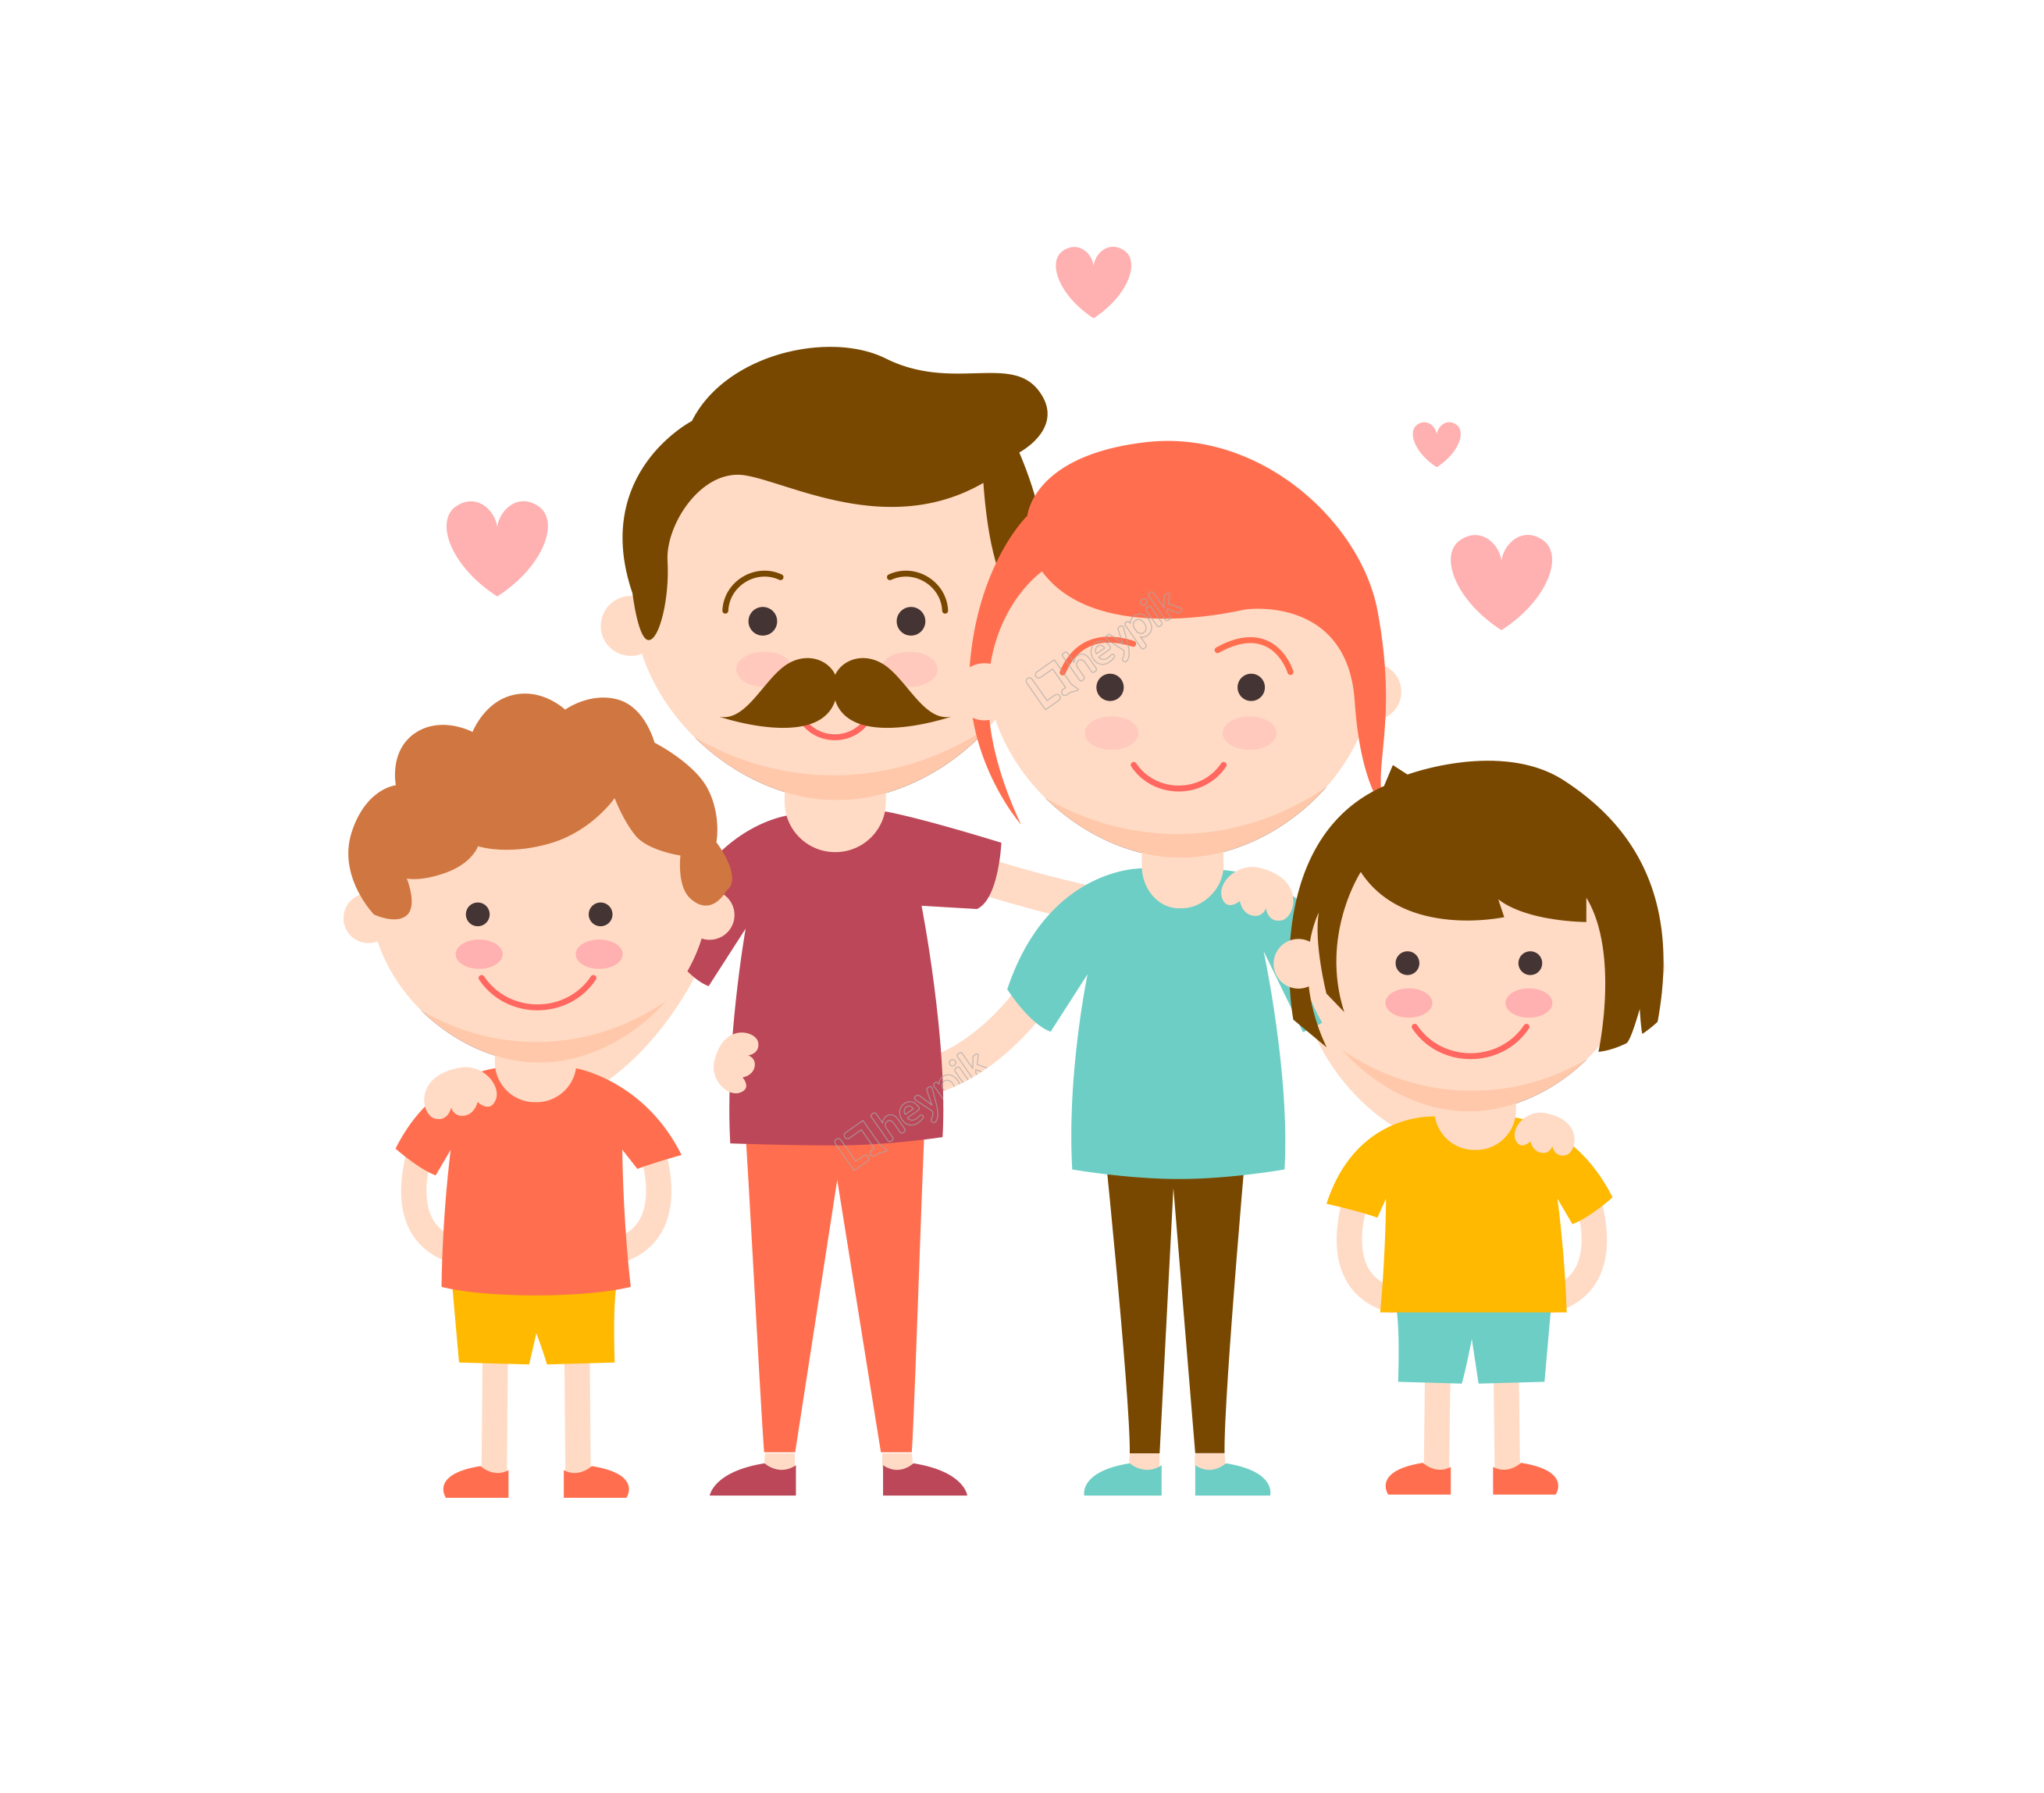 Hand Draw Cartoon The Family Decoration Png Vector Family Cartoon Family Drawing How To Draw Hands ✓ free for commercial use ✓ high quality images. hand draw cartoon the family decoration